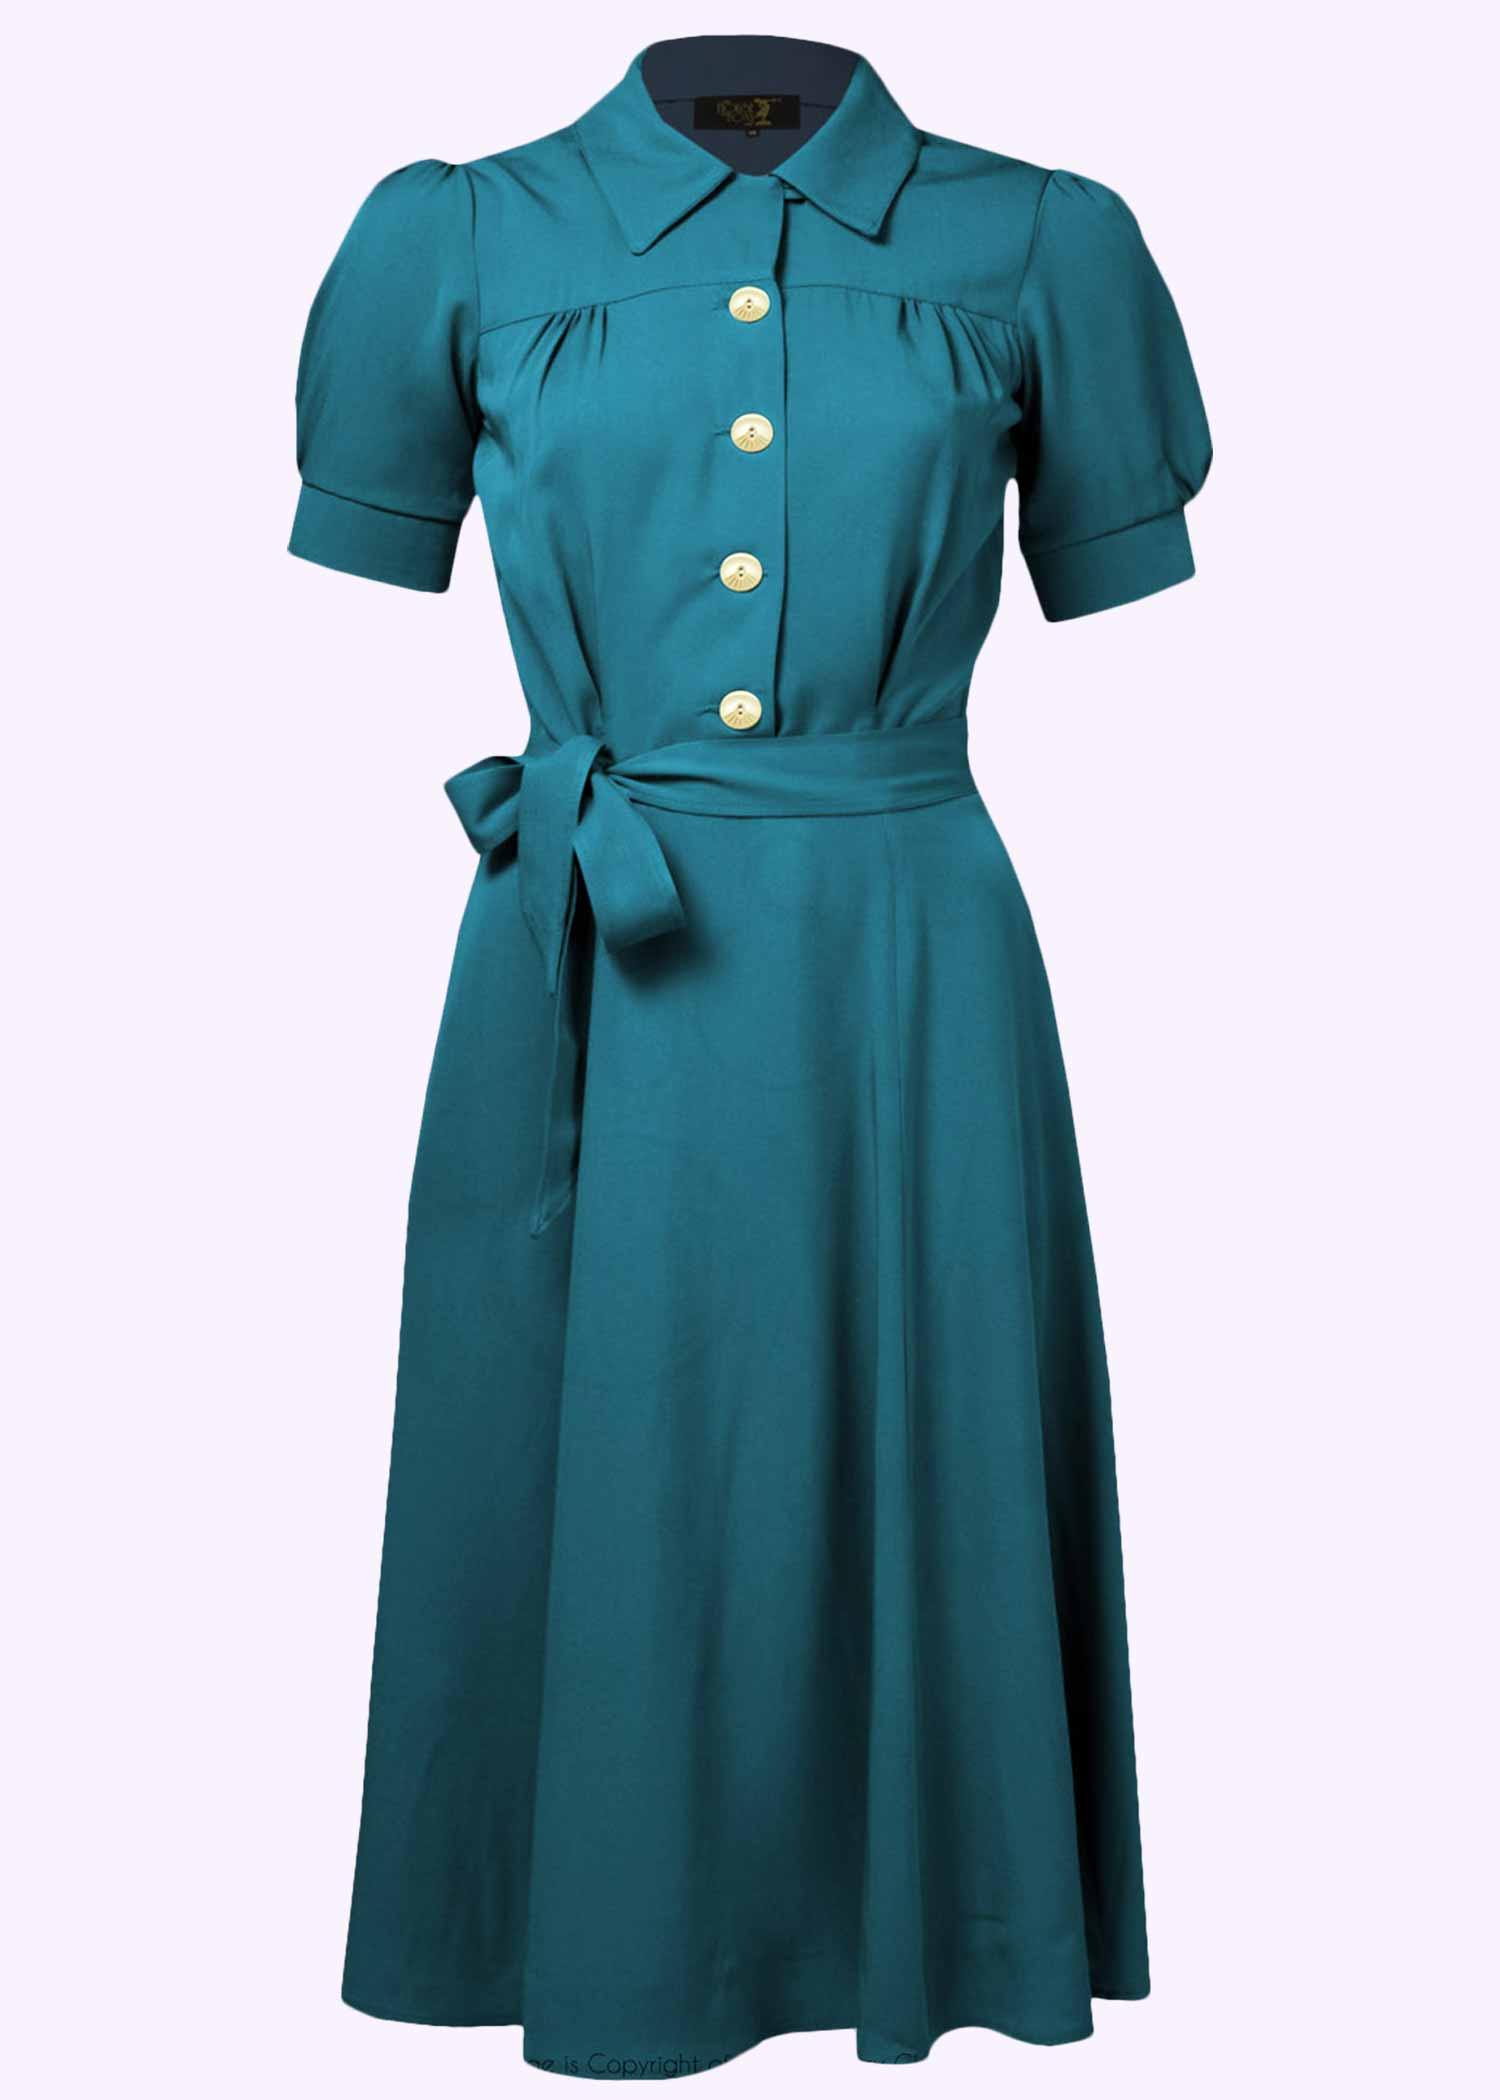 vINTAGE STYLE SHIRT DRESS IN TEAL